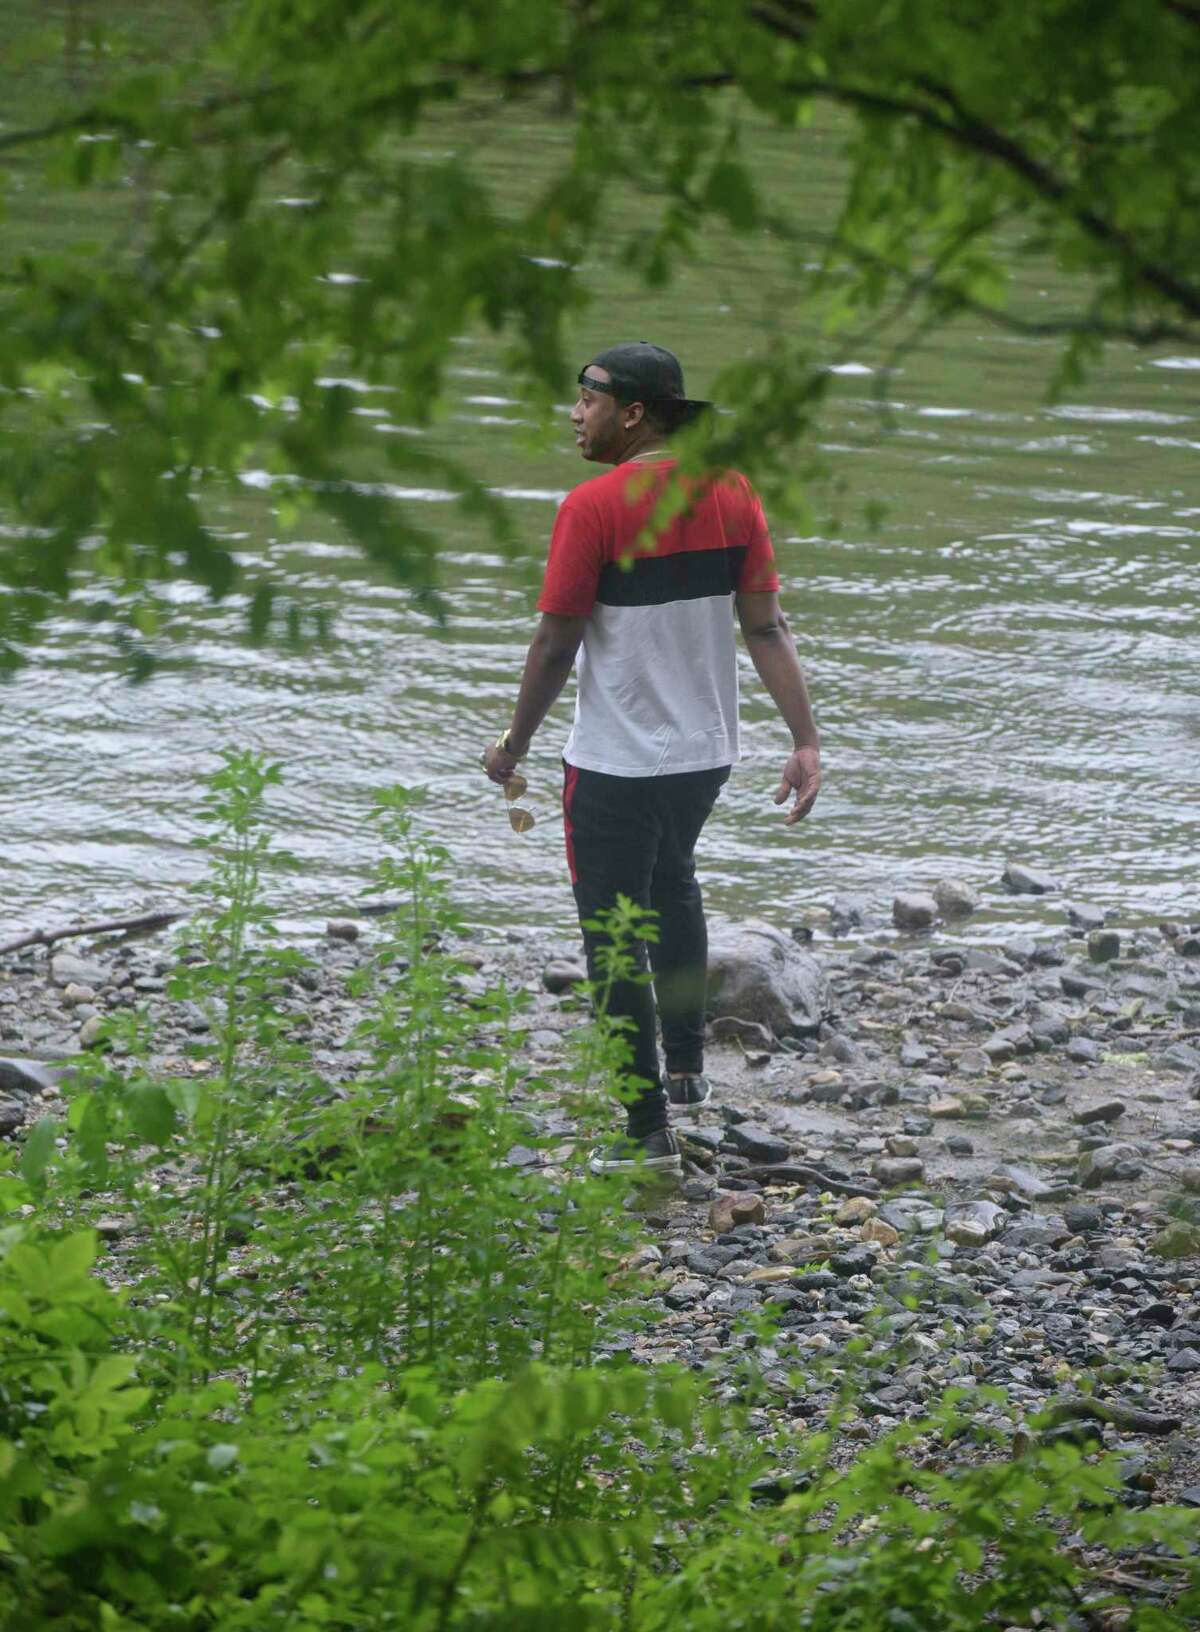 Jonathan Diaz, of New Jersey, stands next to the Housatonic River trying to get a sense of what happened to his cousin who is one of two men who went missing while swimming in the river on Wednesday. After hours of searching the day before, dive teams and first responders were back out scouring the river Thursday for the 21- and 24-year-old New York men, who went missing on Wednesday. June 11, 2020, in New Milford, Conn.